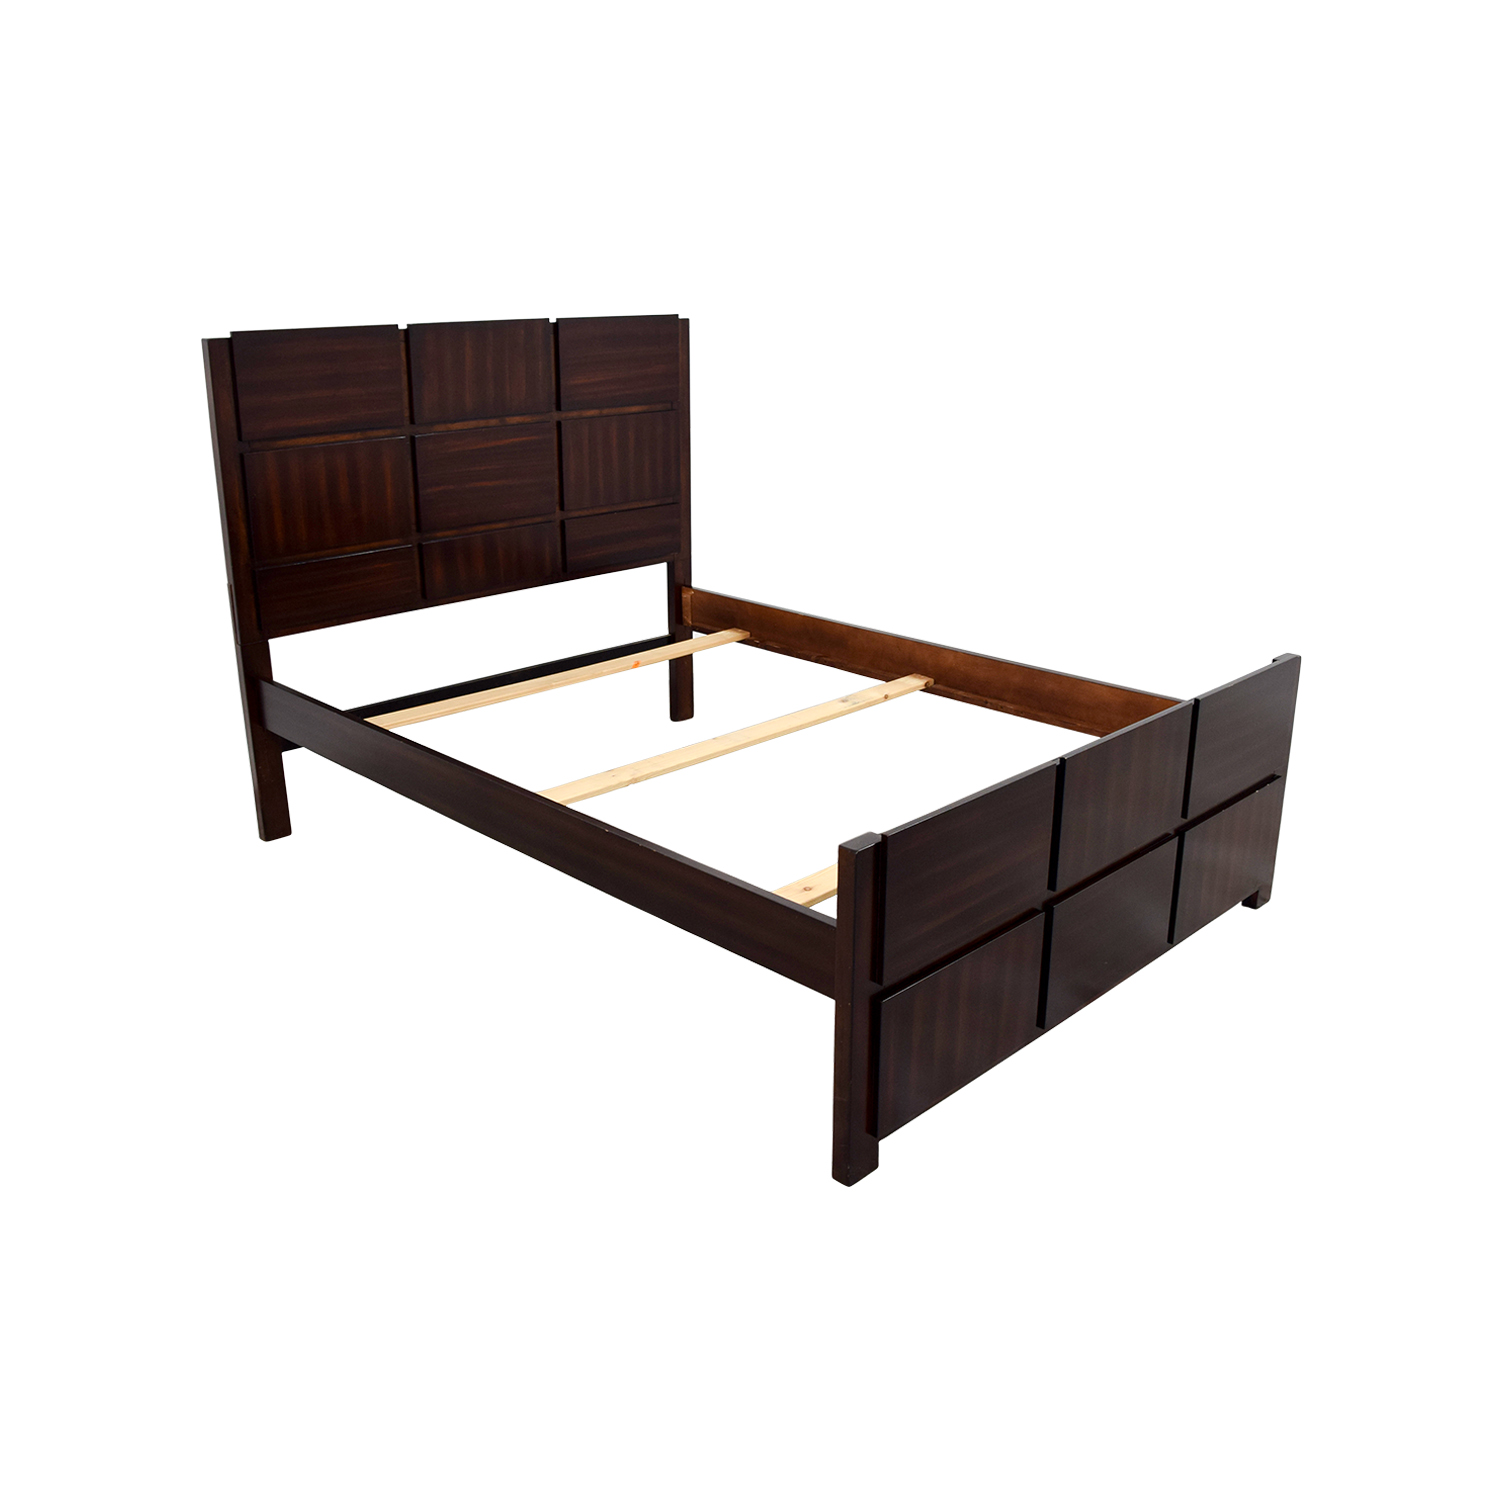 90 Off Brown Wooden Full Bed Frame Beds